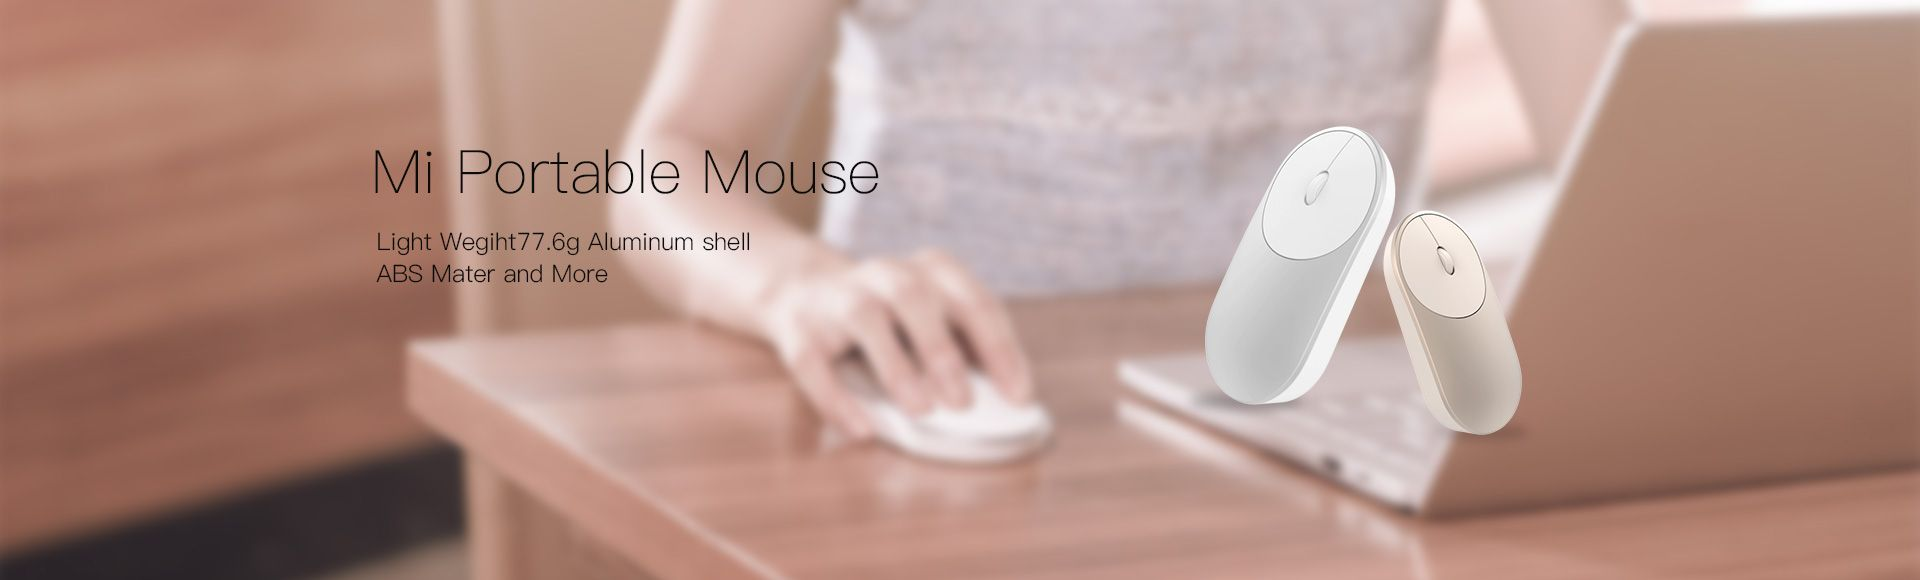 Xiaomi Mi Portable Mouse  - with Dual mode connecting using Bluetooth 2.4G Wireless adapter A switch between two computers 77.5g (Include Free Bluetooth/Wlan Adapter)